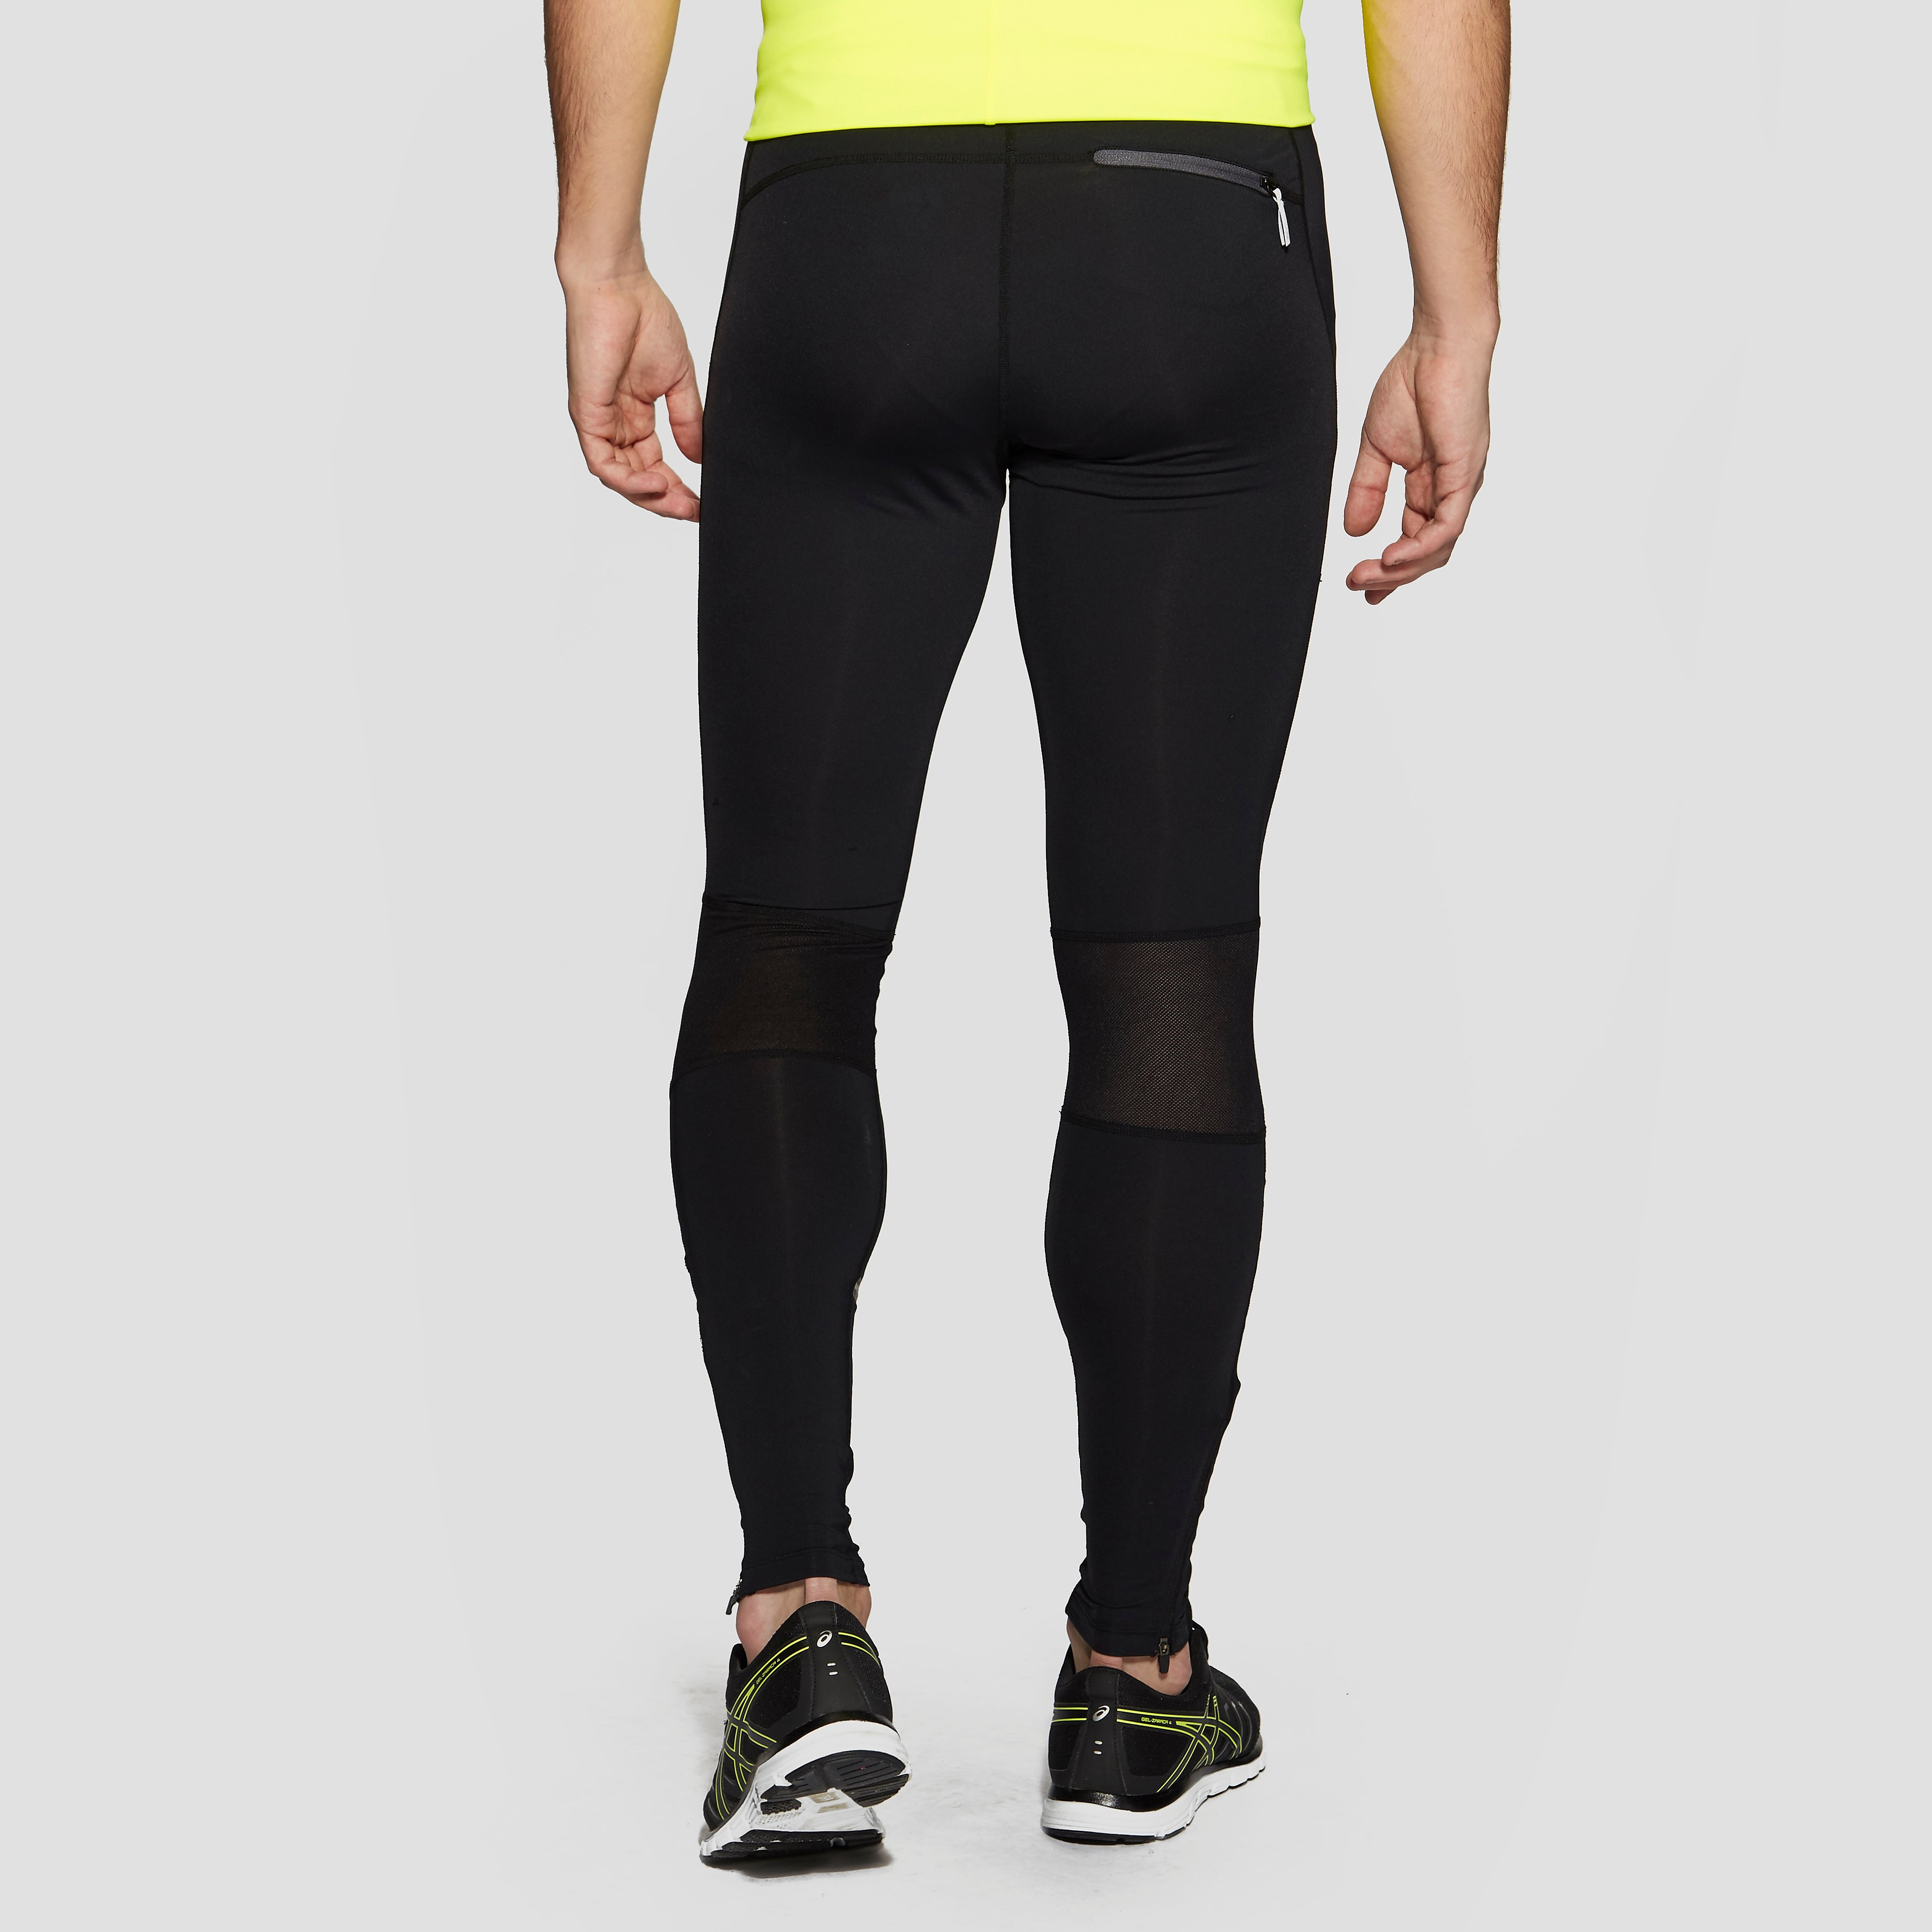 ASICS Stripe Men's Running Tights